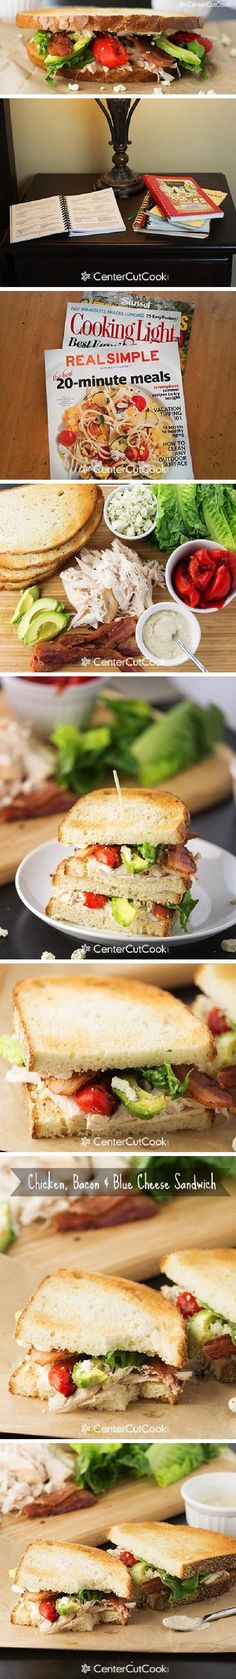 CHICKEN, BACON and BLUE CHEESE SANDWICHES are perfect for a fast and fresh lunch!